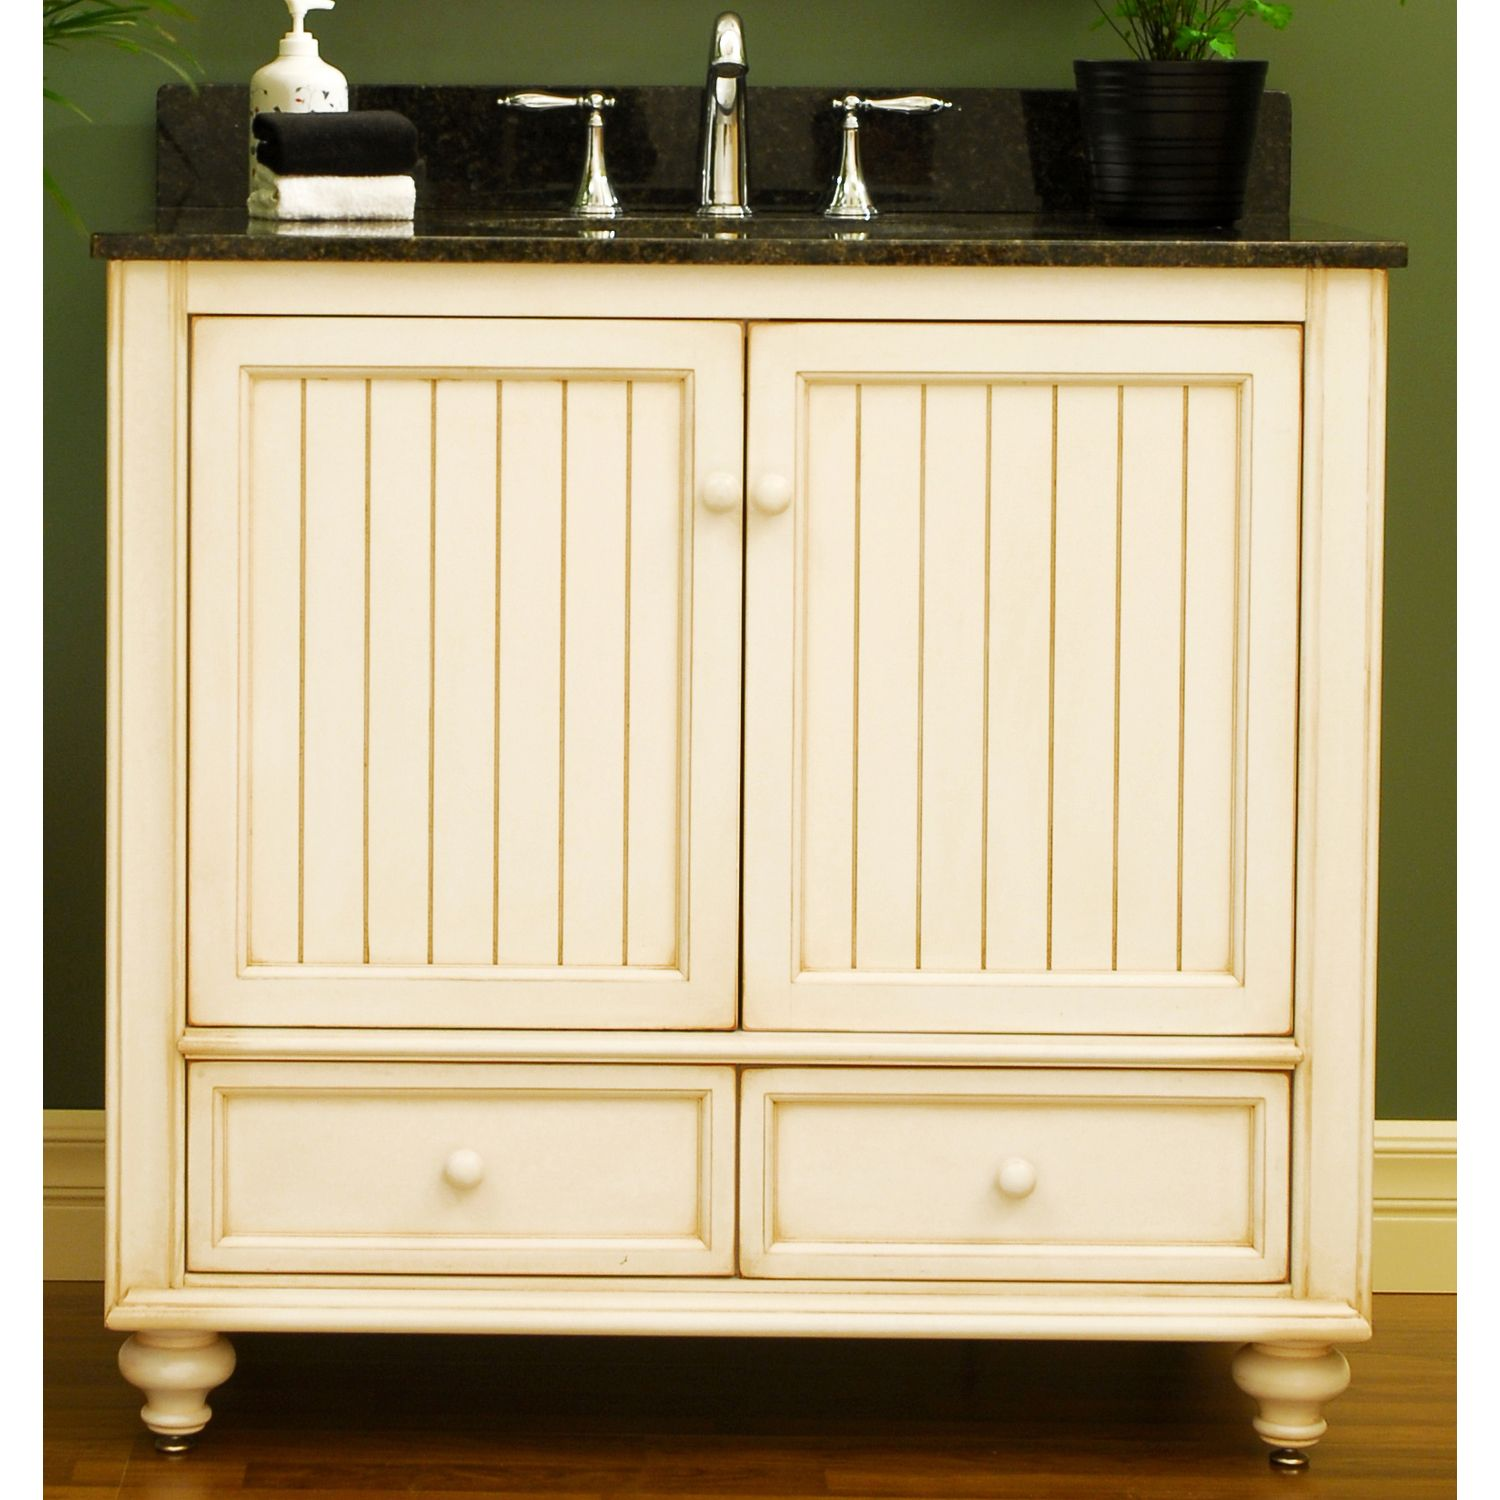 wood bathroom vanity cabinet from the bristol beach kitchen cabinets